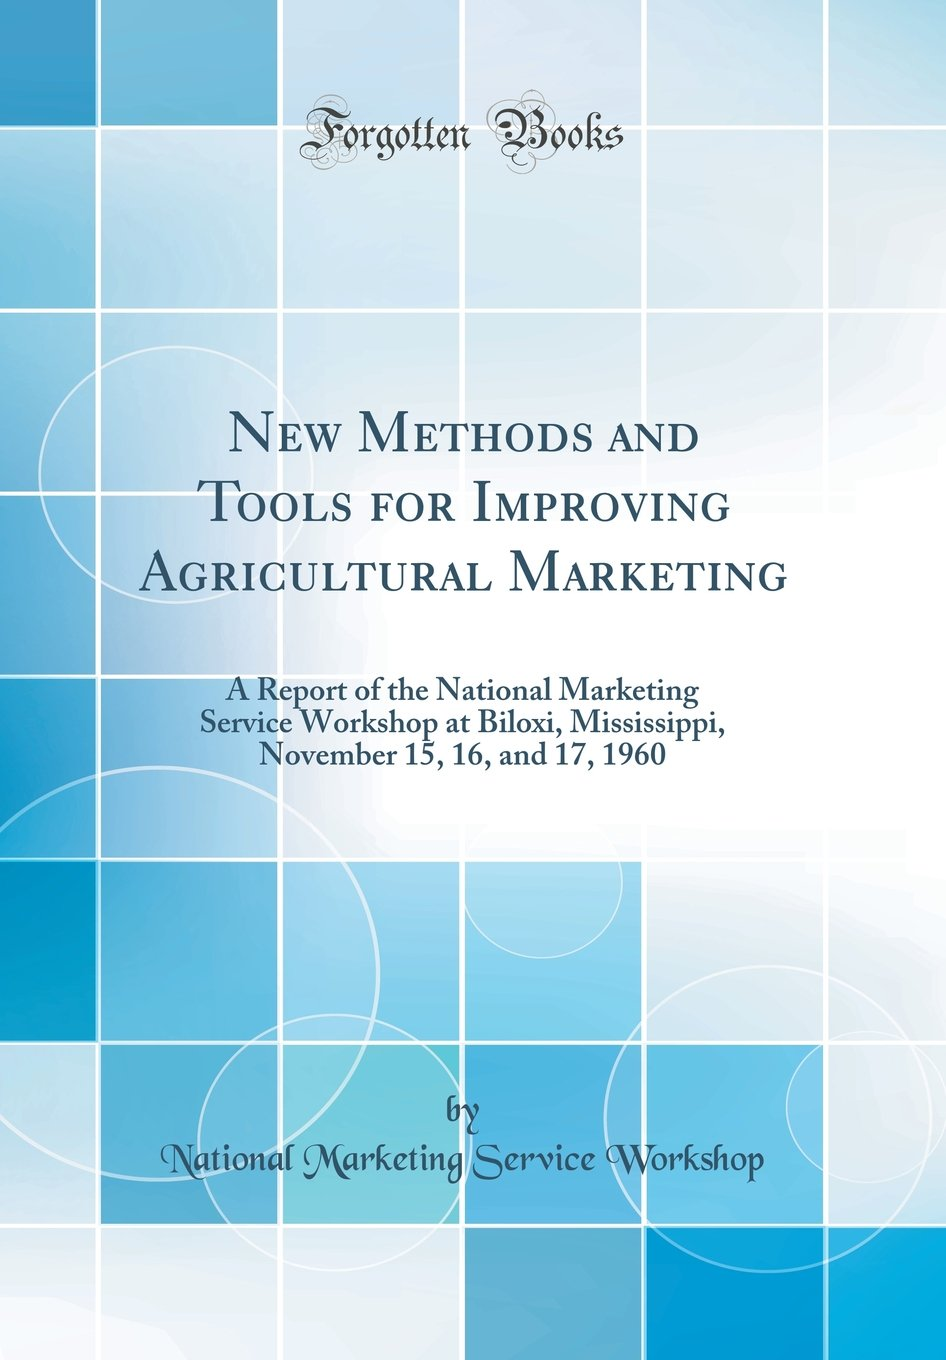 Download New Methods and Tools for Improving Agricultural Marketing: A Report of the National Marketing Service Workshop at Biloxi, Mississippi, November 15, 16, and 17, 1960 (Classic Reprint) PDF